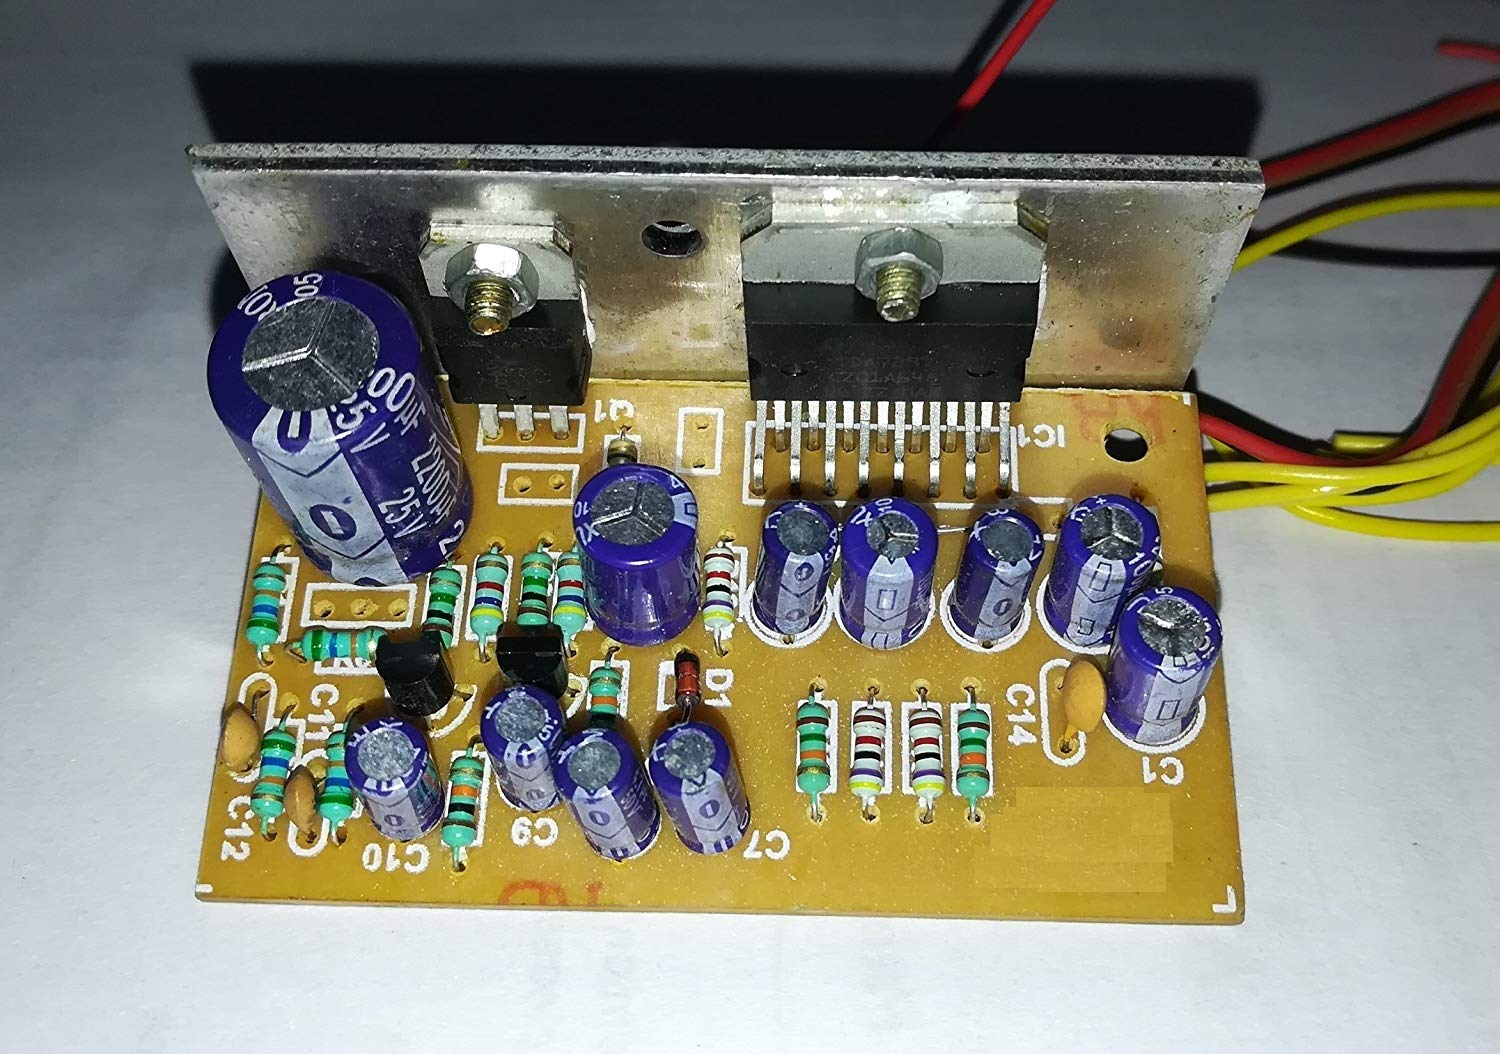 Salcon Electronics Tda7297 Low Noise Audio Amplifier Tone Control Circuit With Transistor